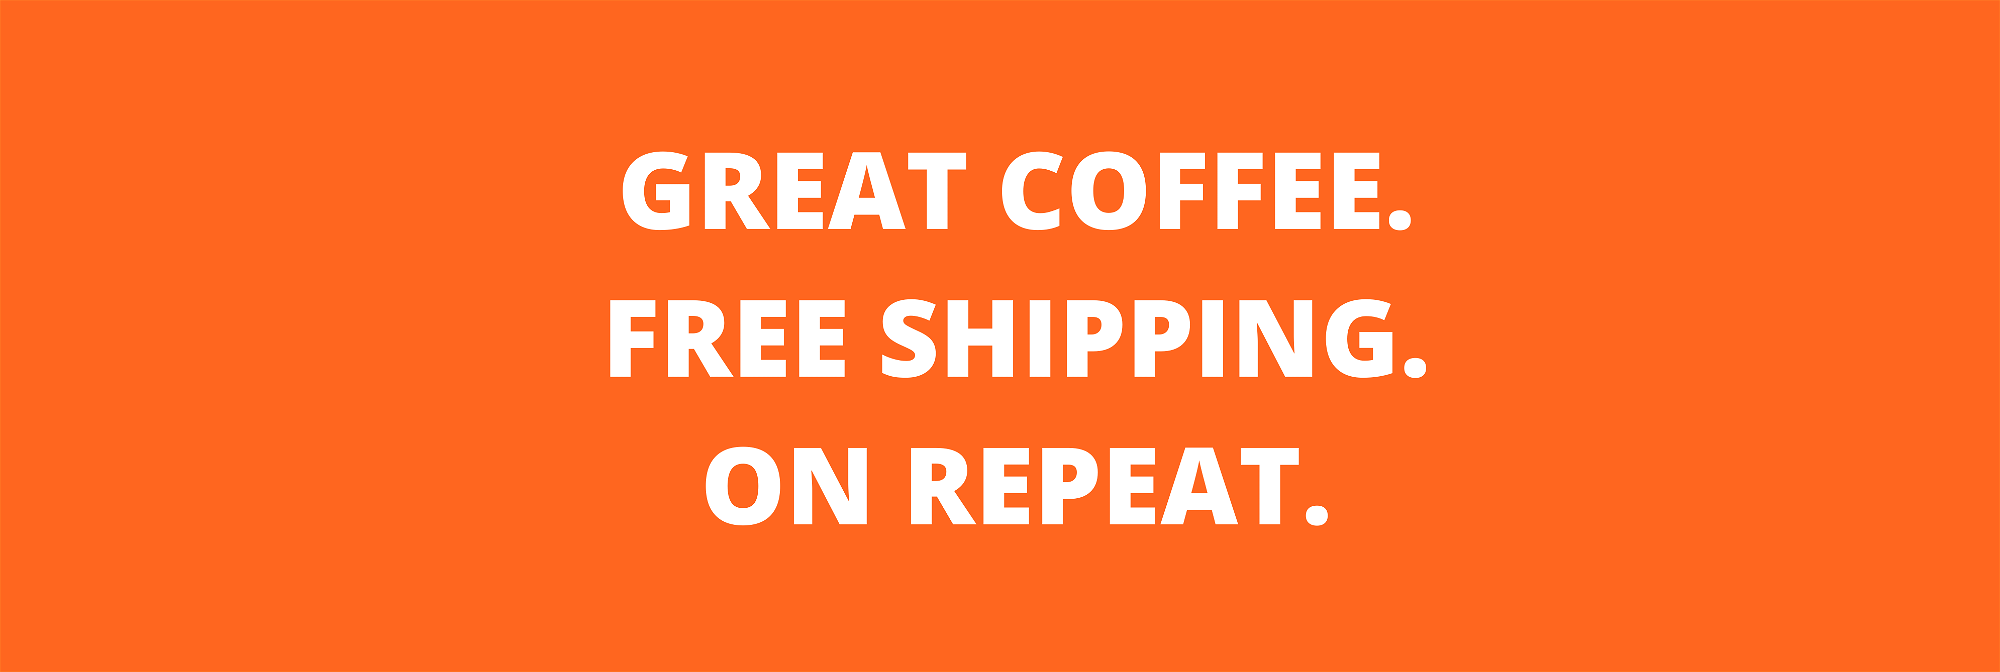 great coffee, free shipping, on repeat